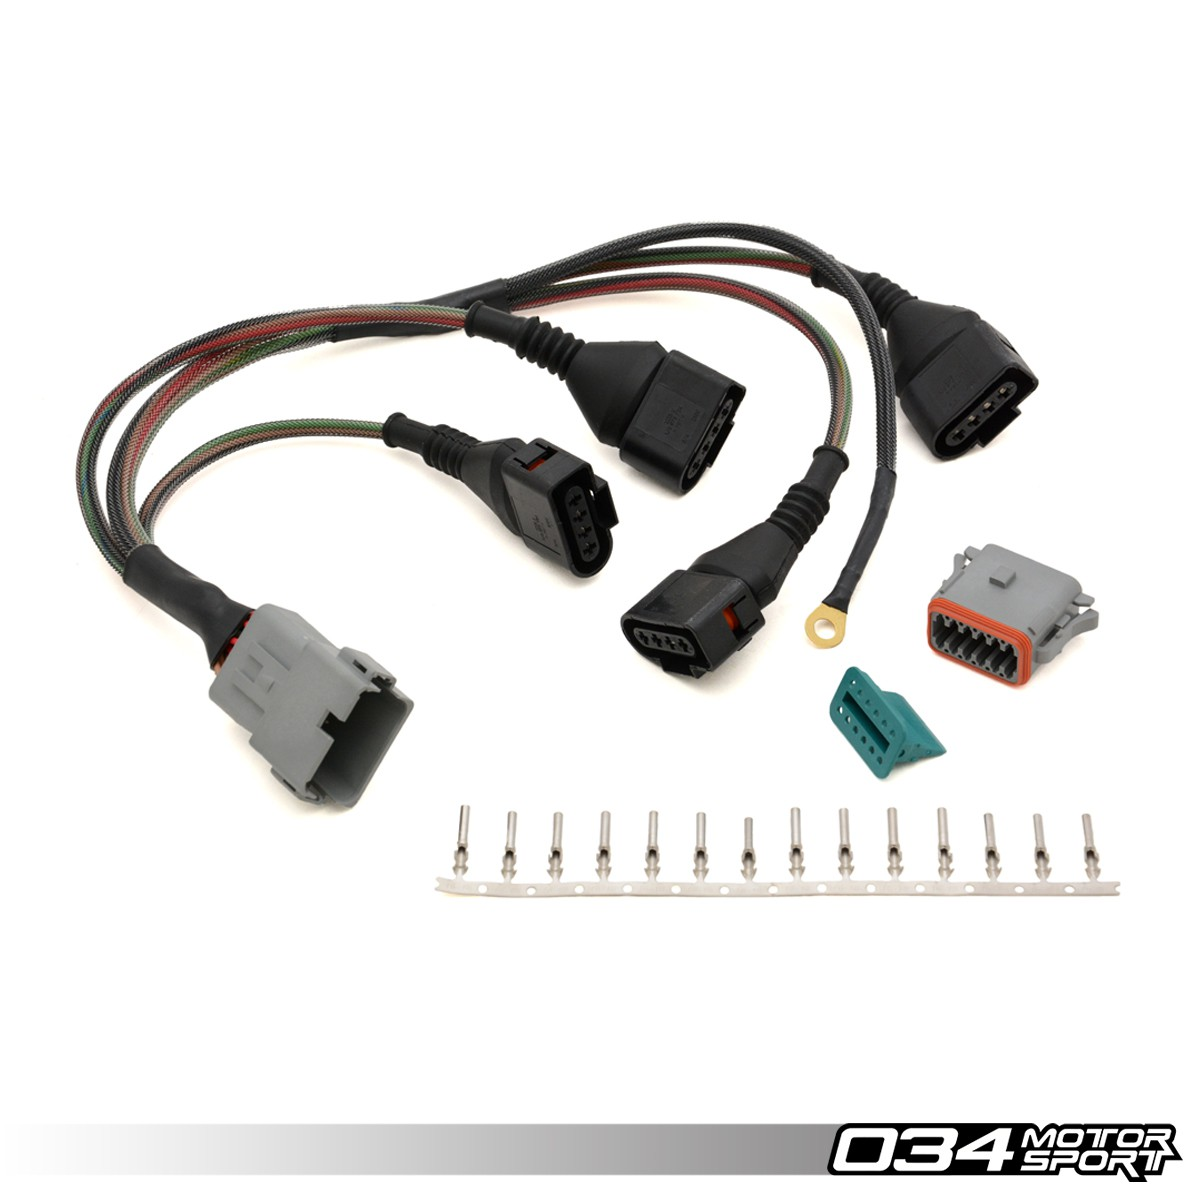 repair update harness audi volkswagen 18t with 4 wire coils 034motorsport 034 701 0004 2 repair update harness, audi volkswagen 1 8t with 4 wire coils Audi Ignition Coil Problem at readyjetset.co